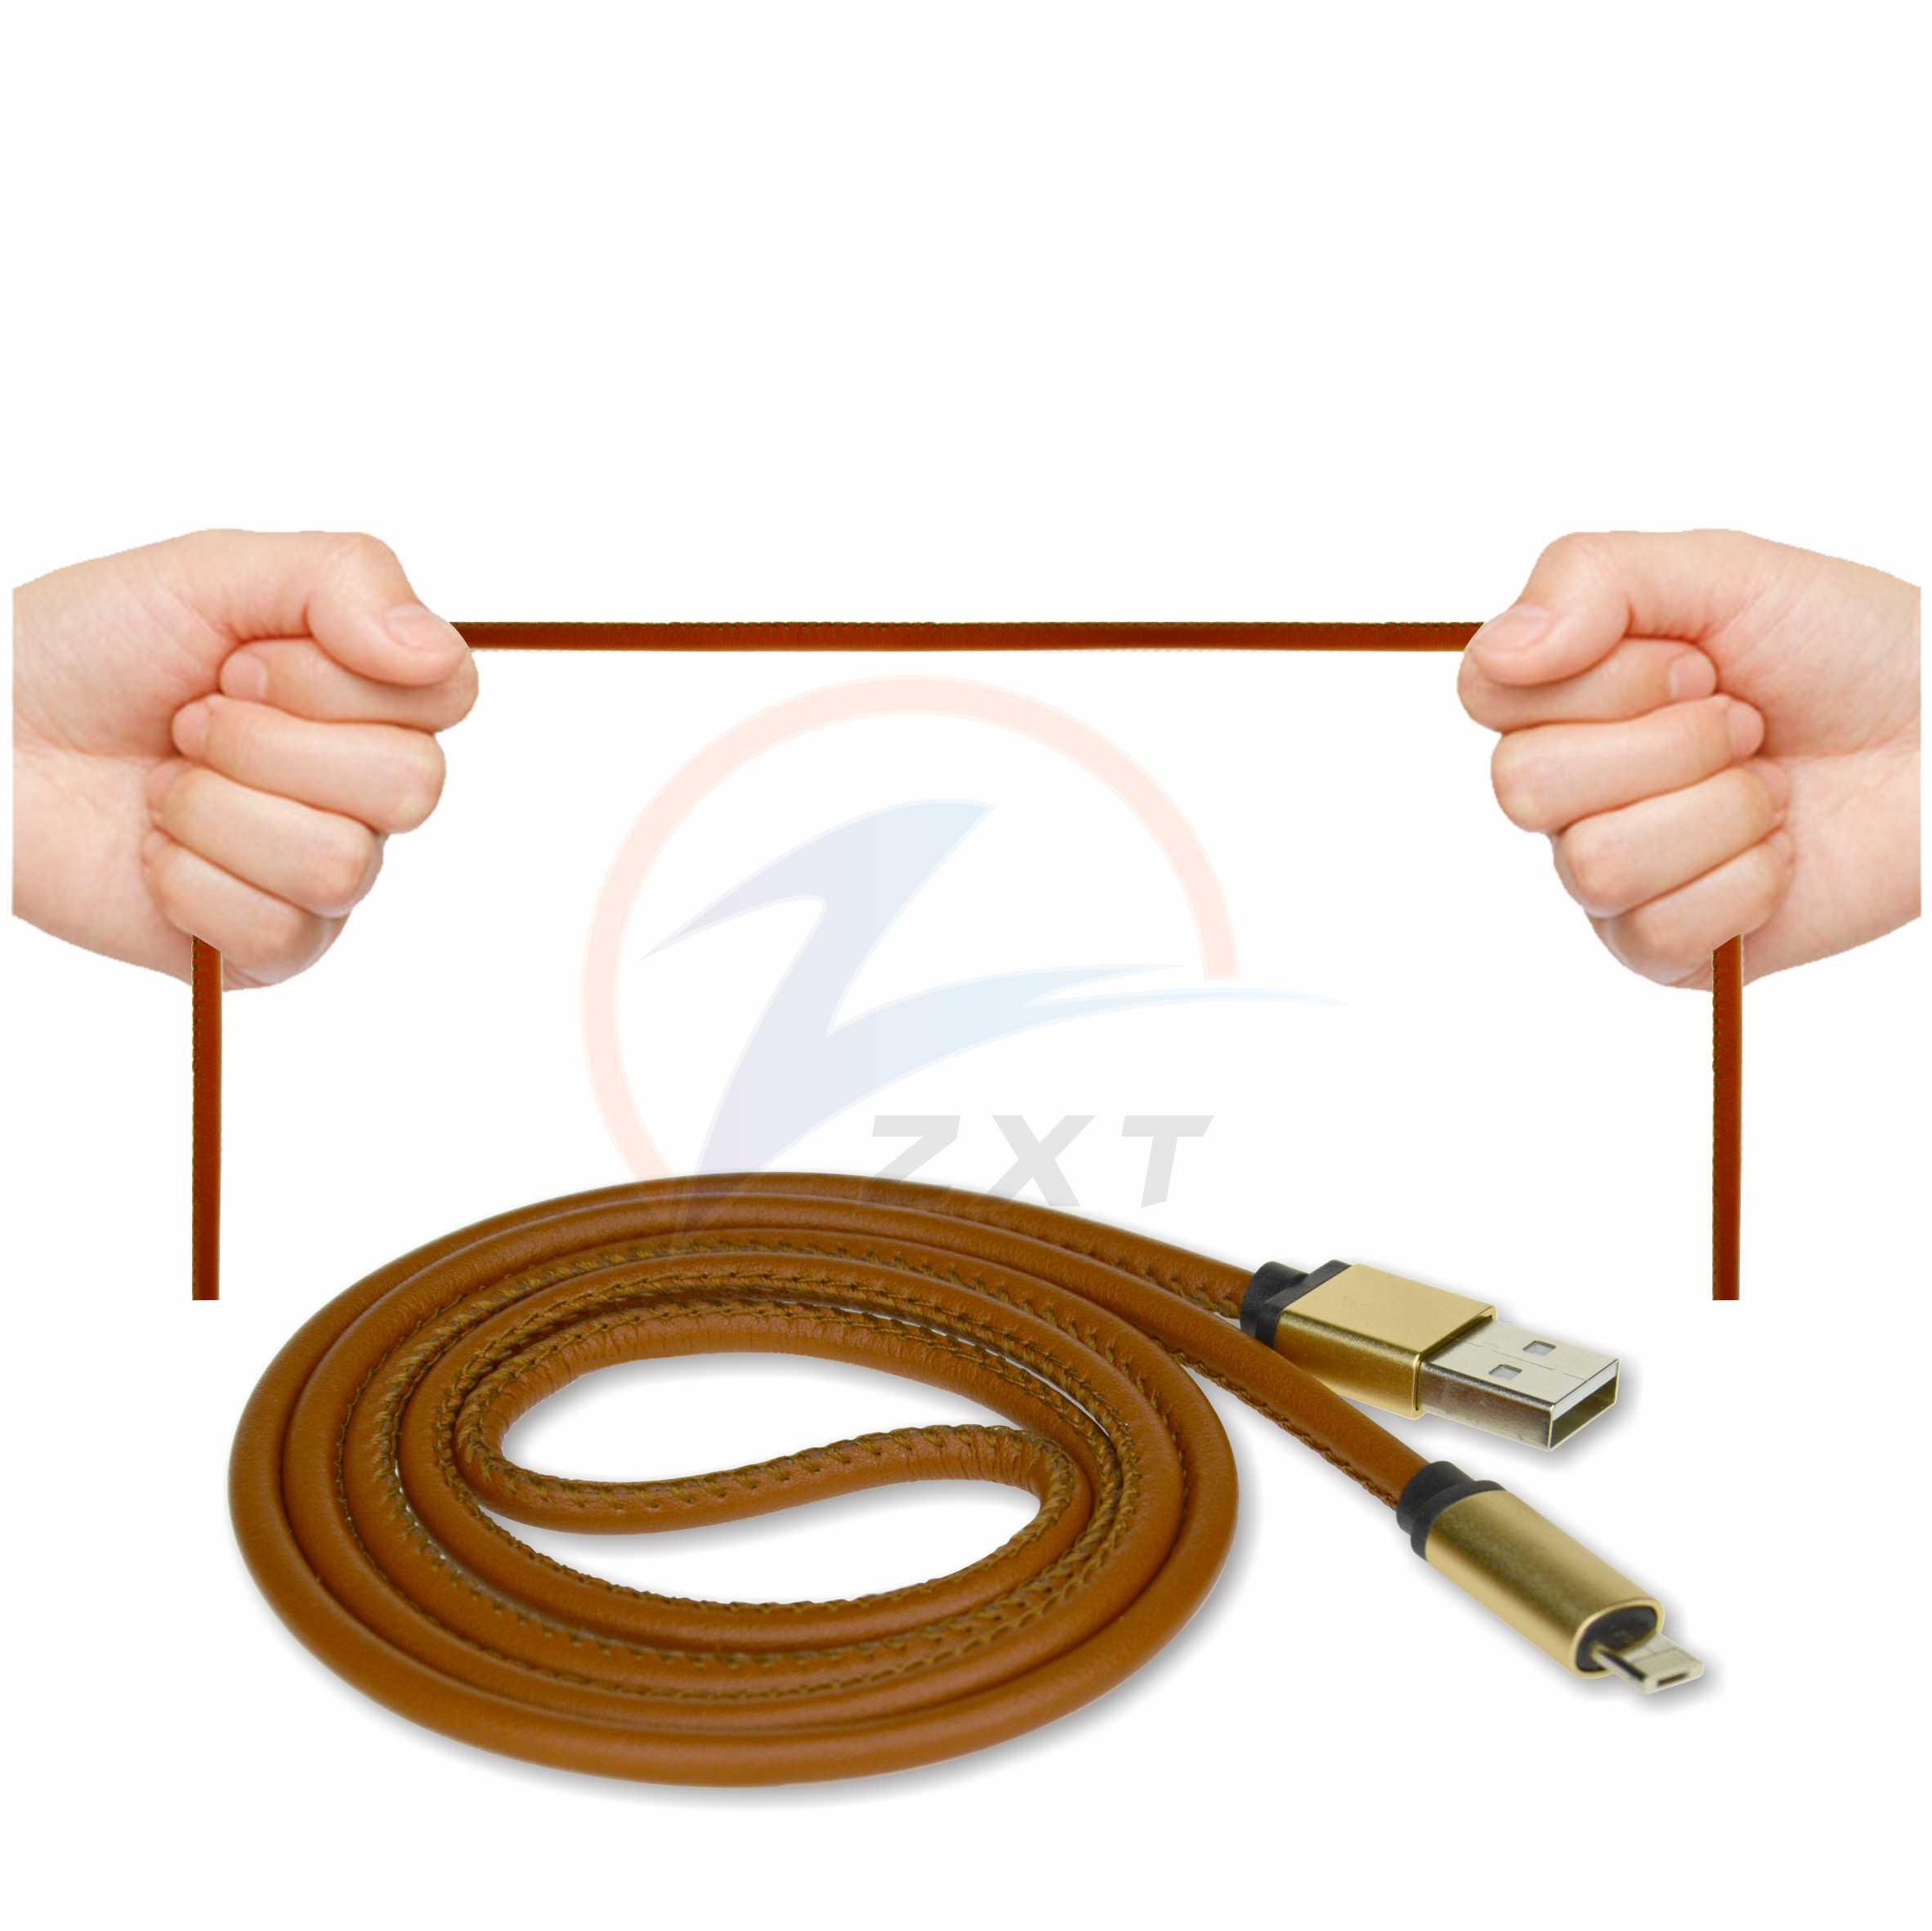 2 in 1 LM Leather Cable For Android & IOS